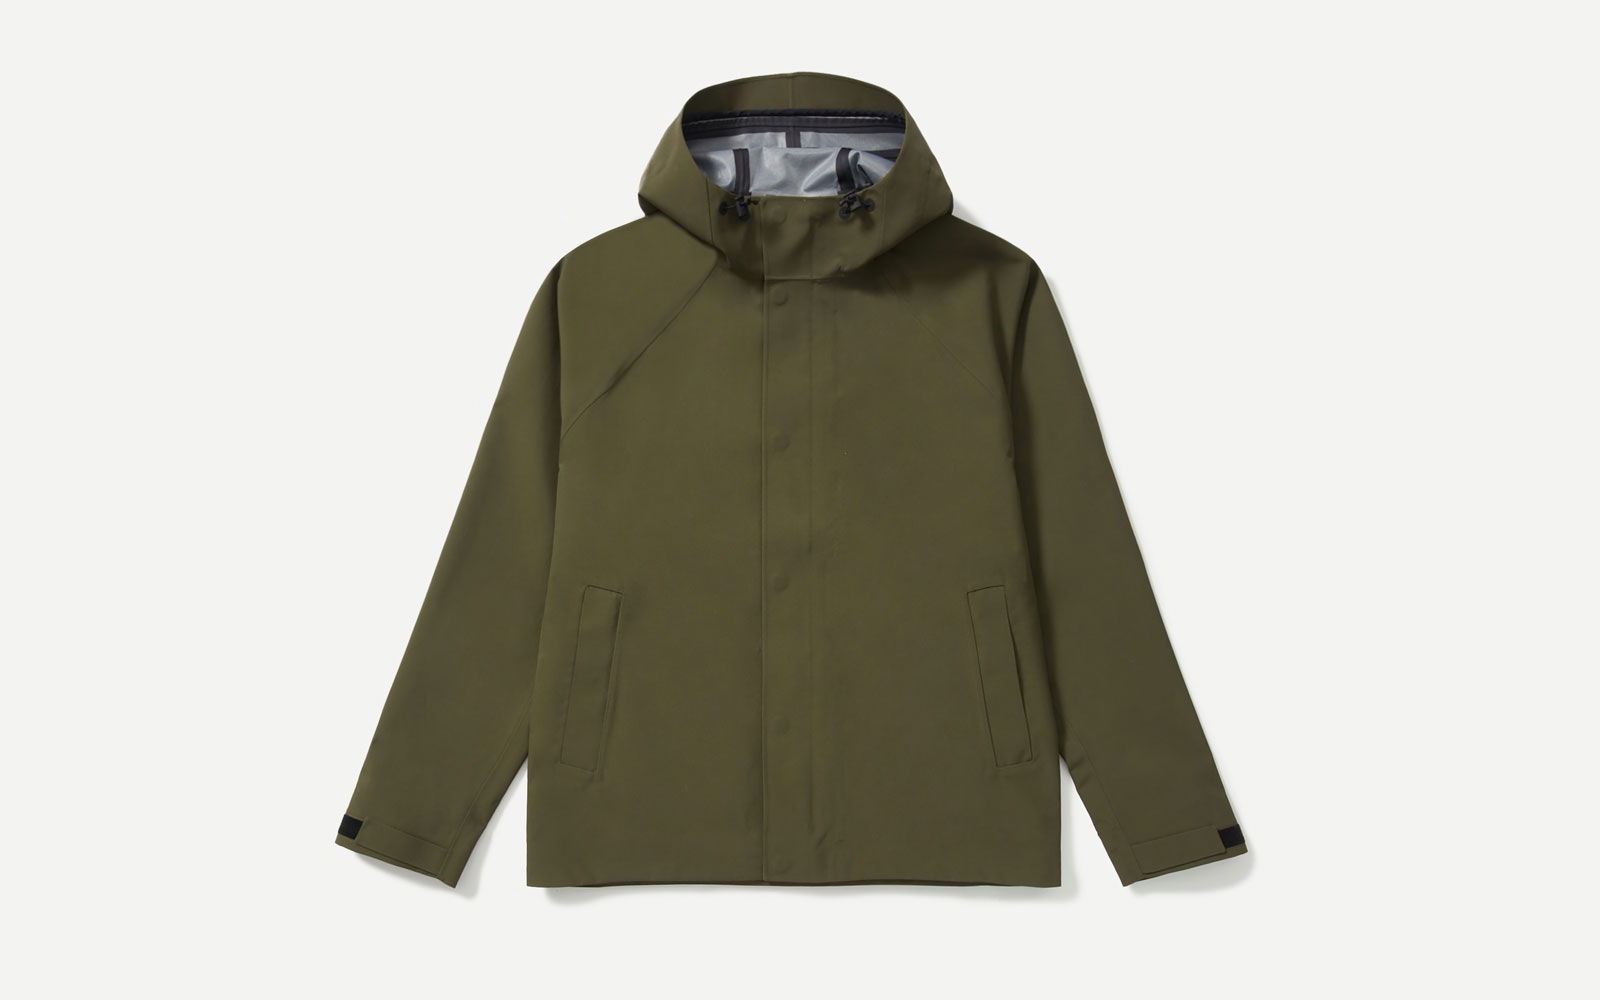 Men's dark green rain jacket